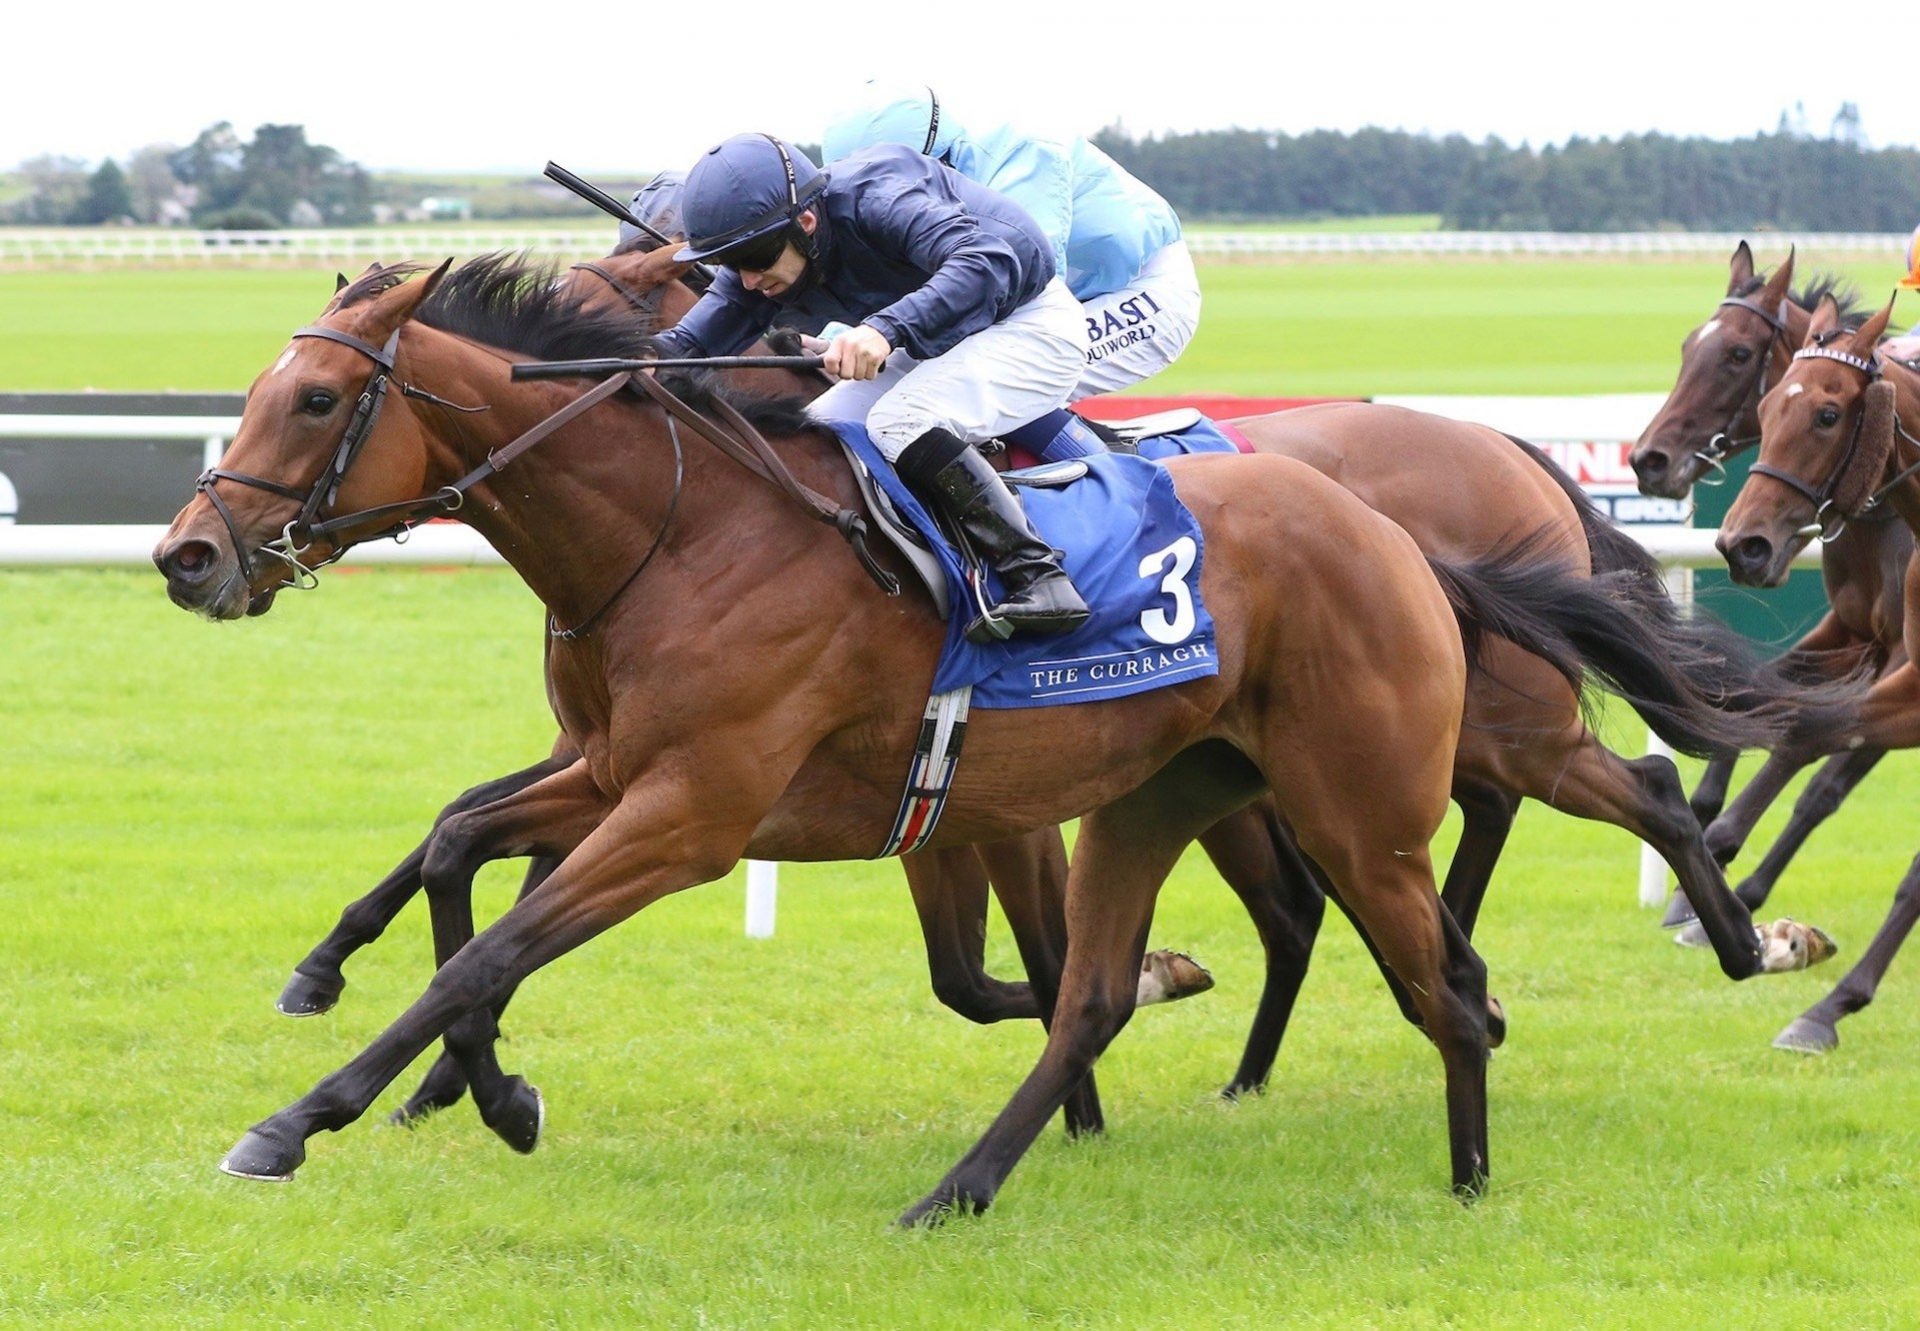 Divinely (Galileo) Wins The Group 3 Flame Of Tara Stakes at the Curragh